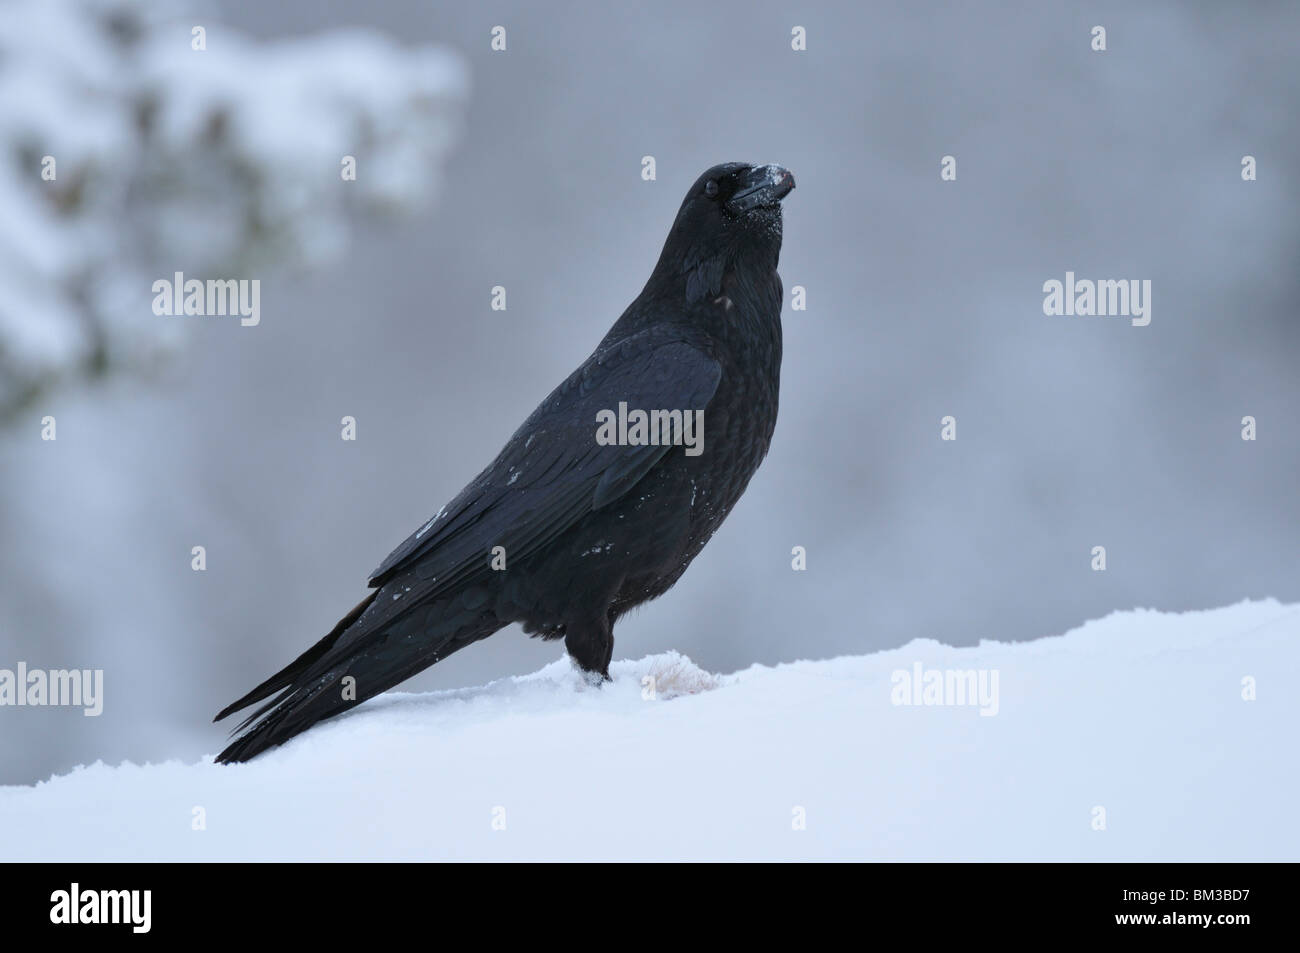 Common Raven (Corvus corax), adult perched on snow. - Stock Image